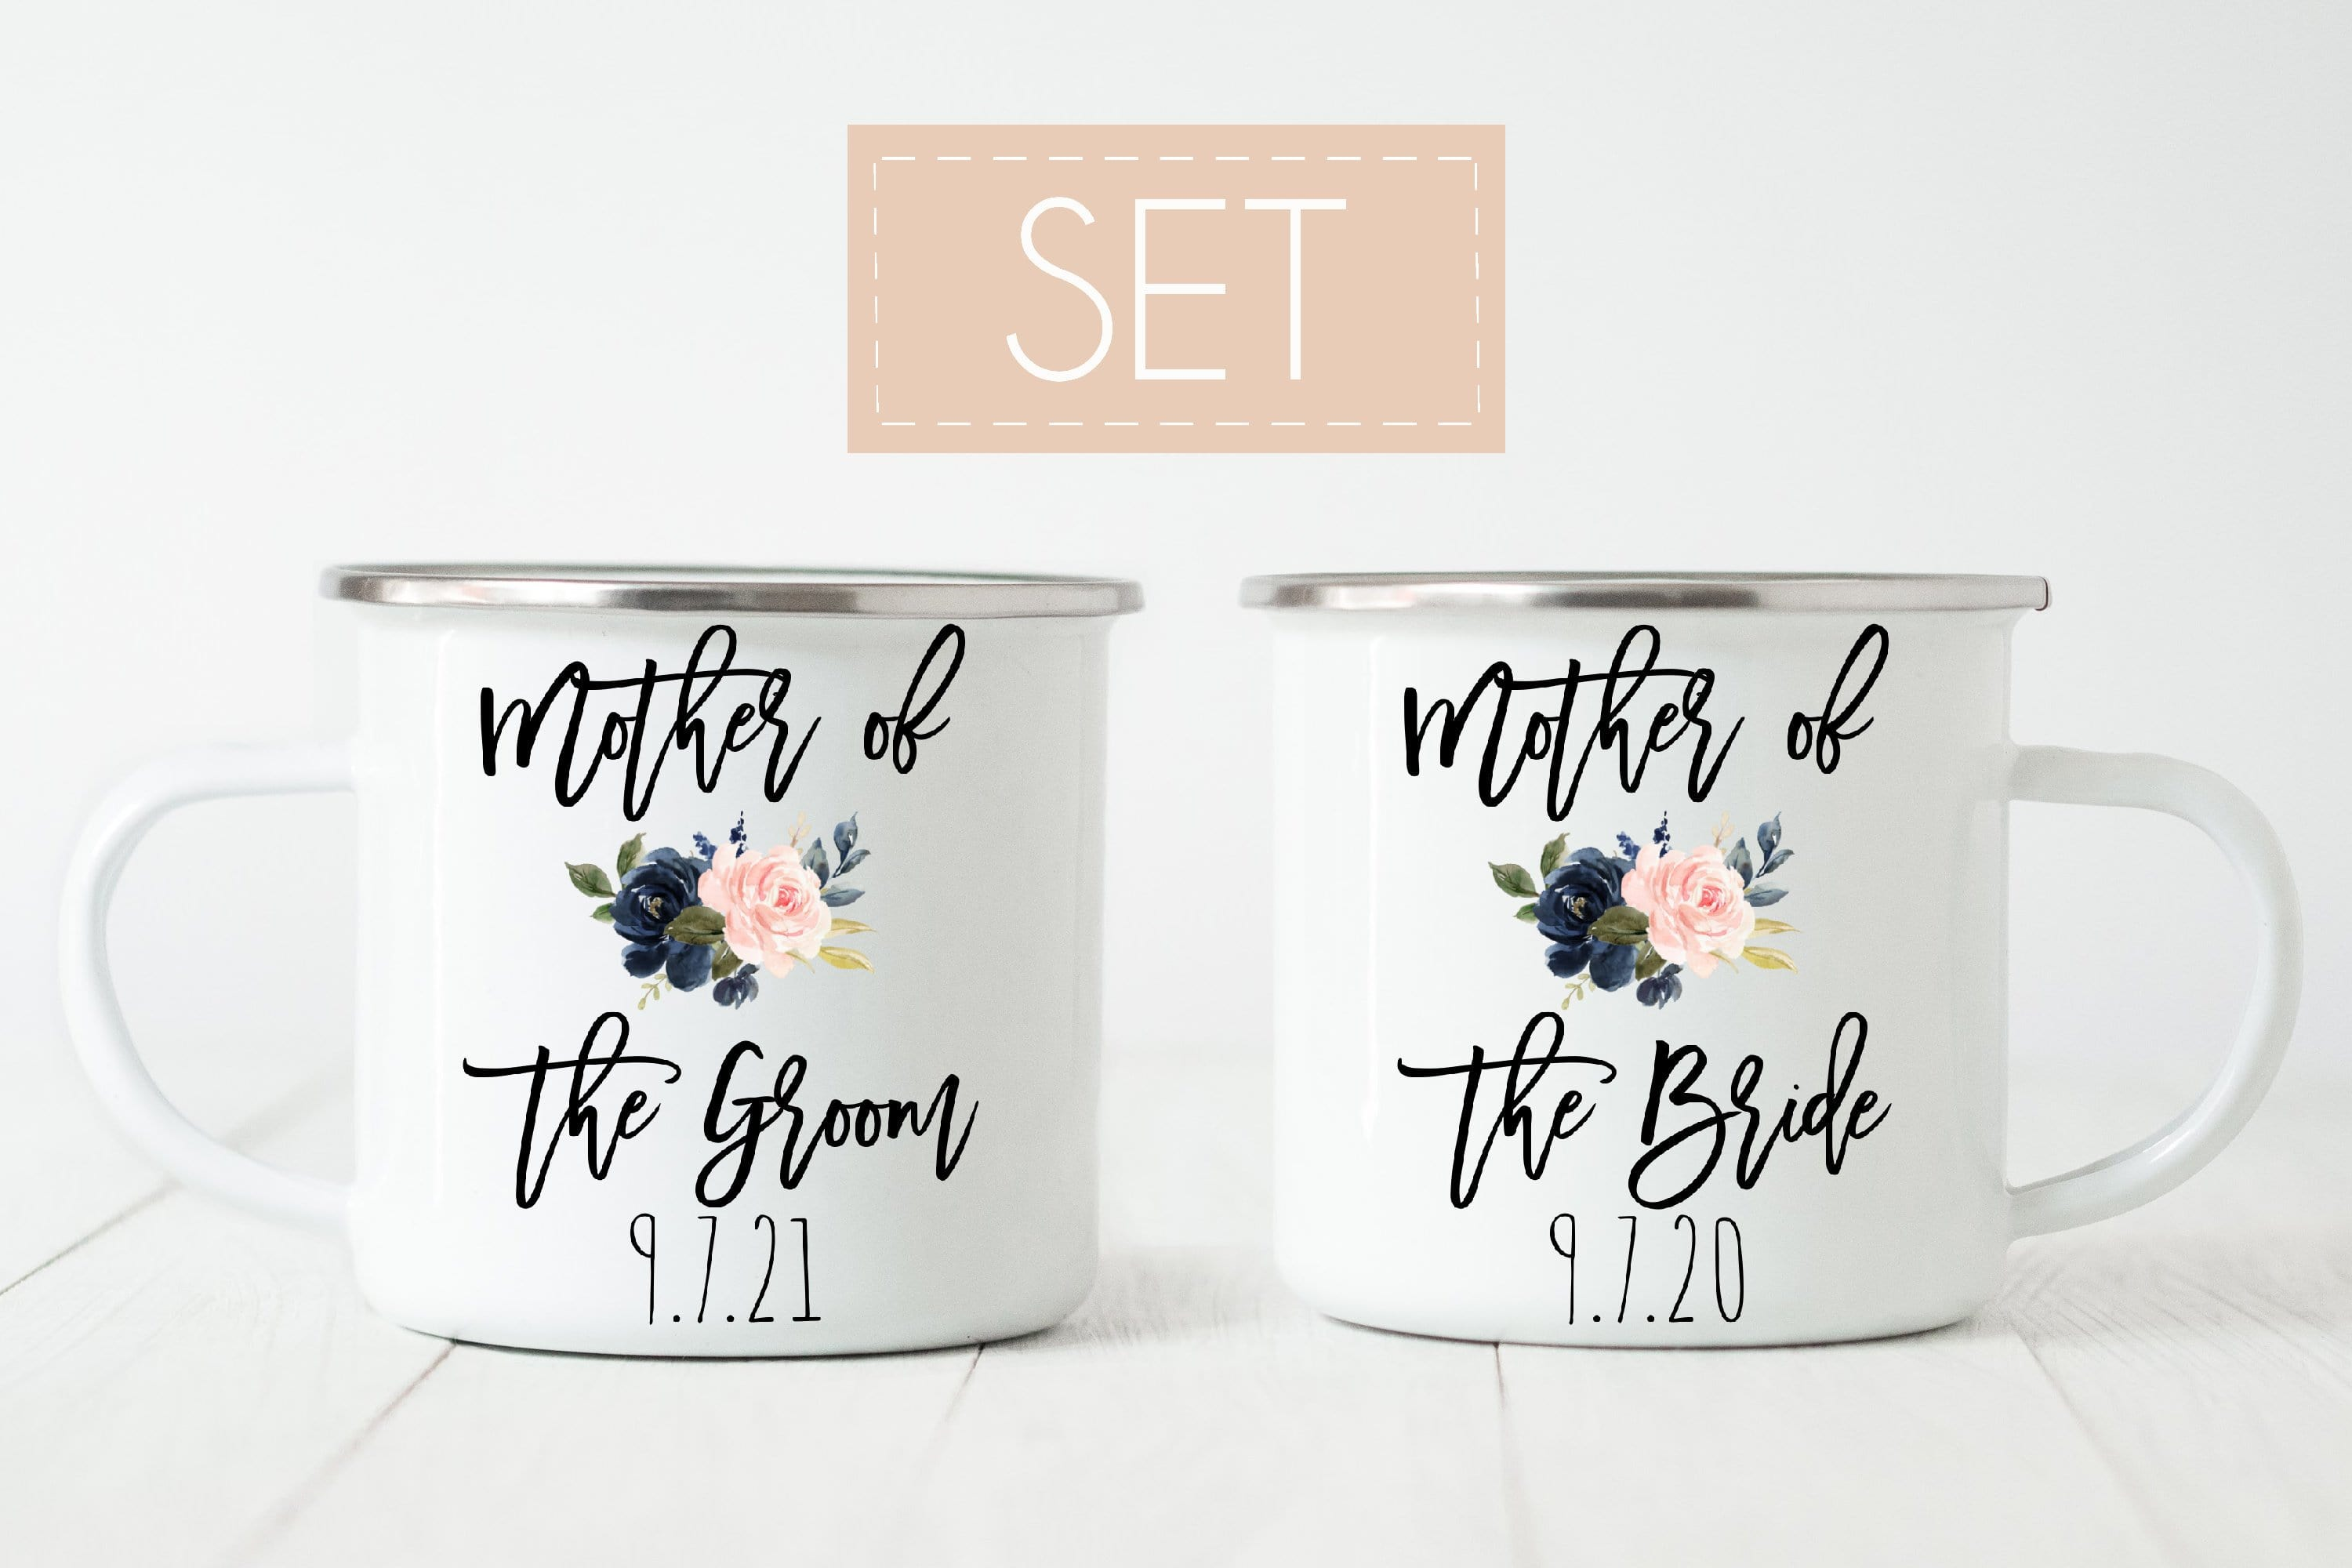 Mother of bride and groom mugs set of 2